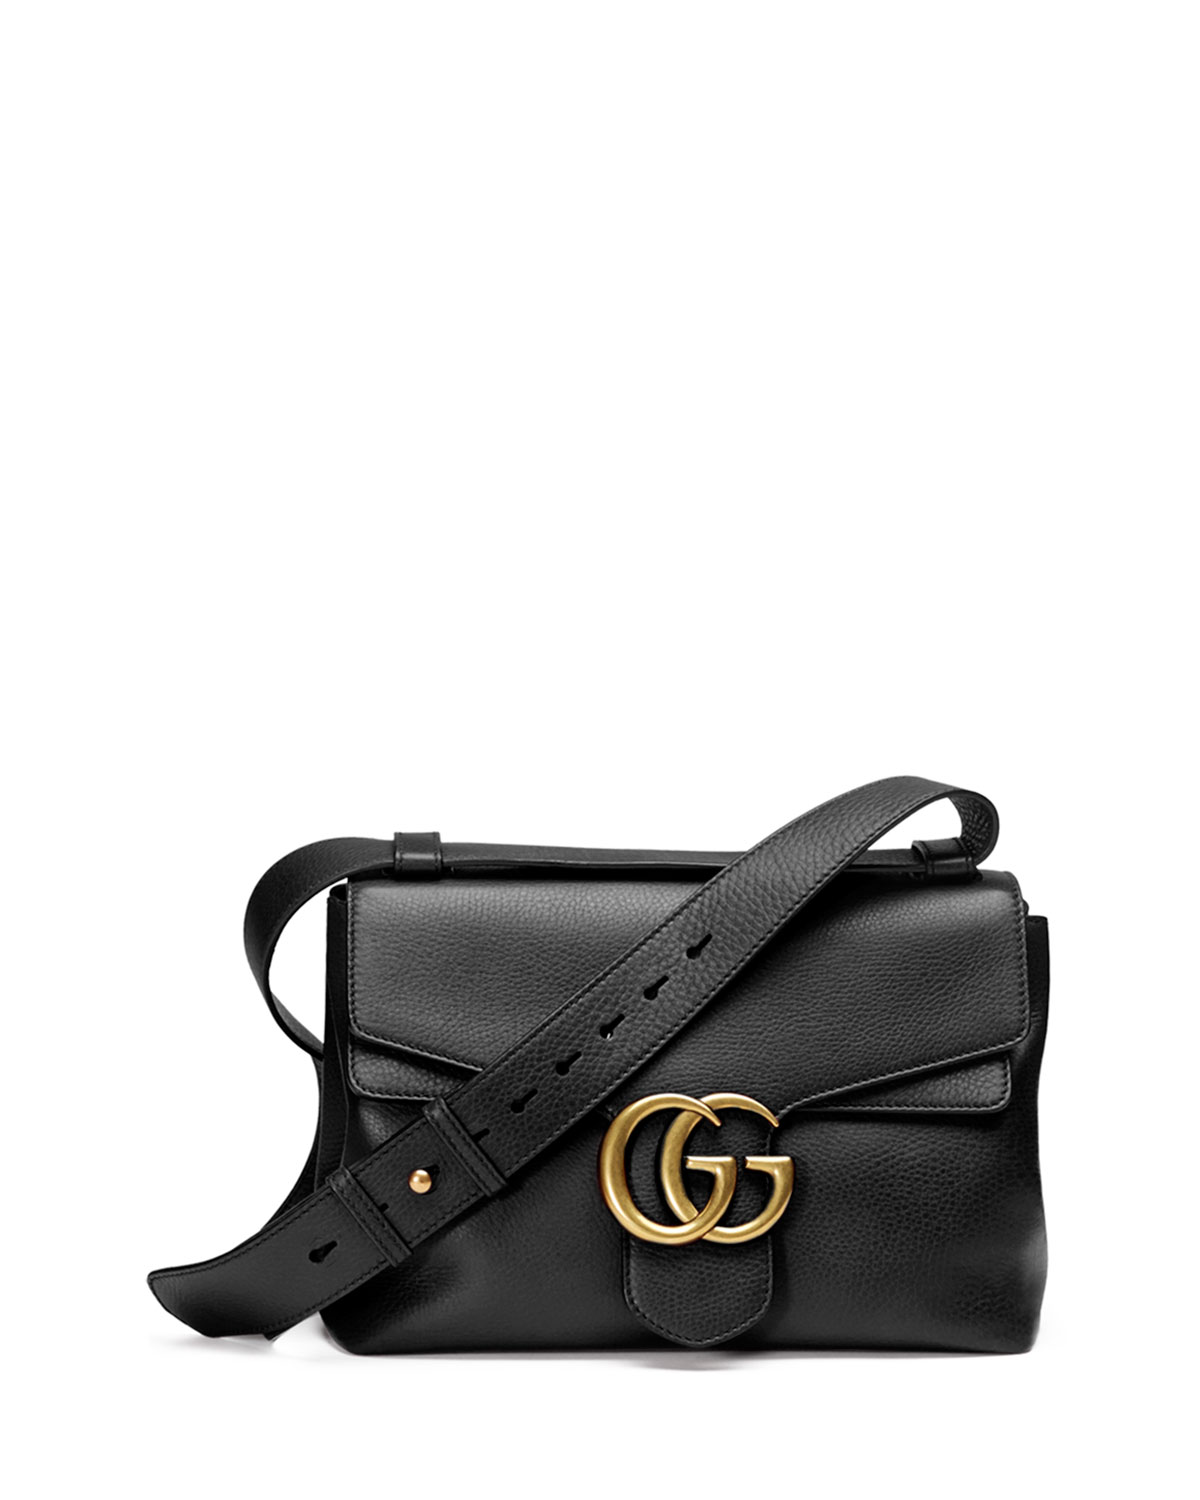 67124bdde15 Gucci GG Marmont Medium Leather Shoulder Bag